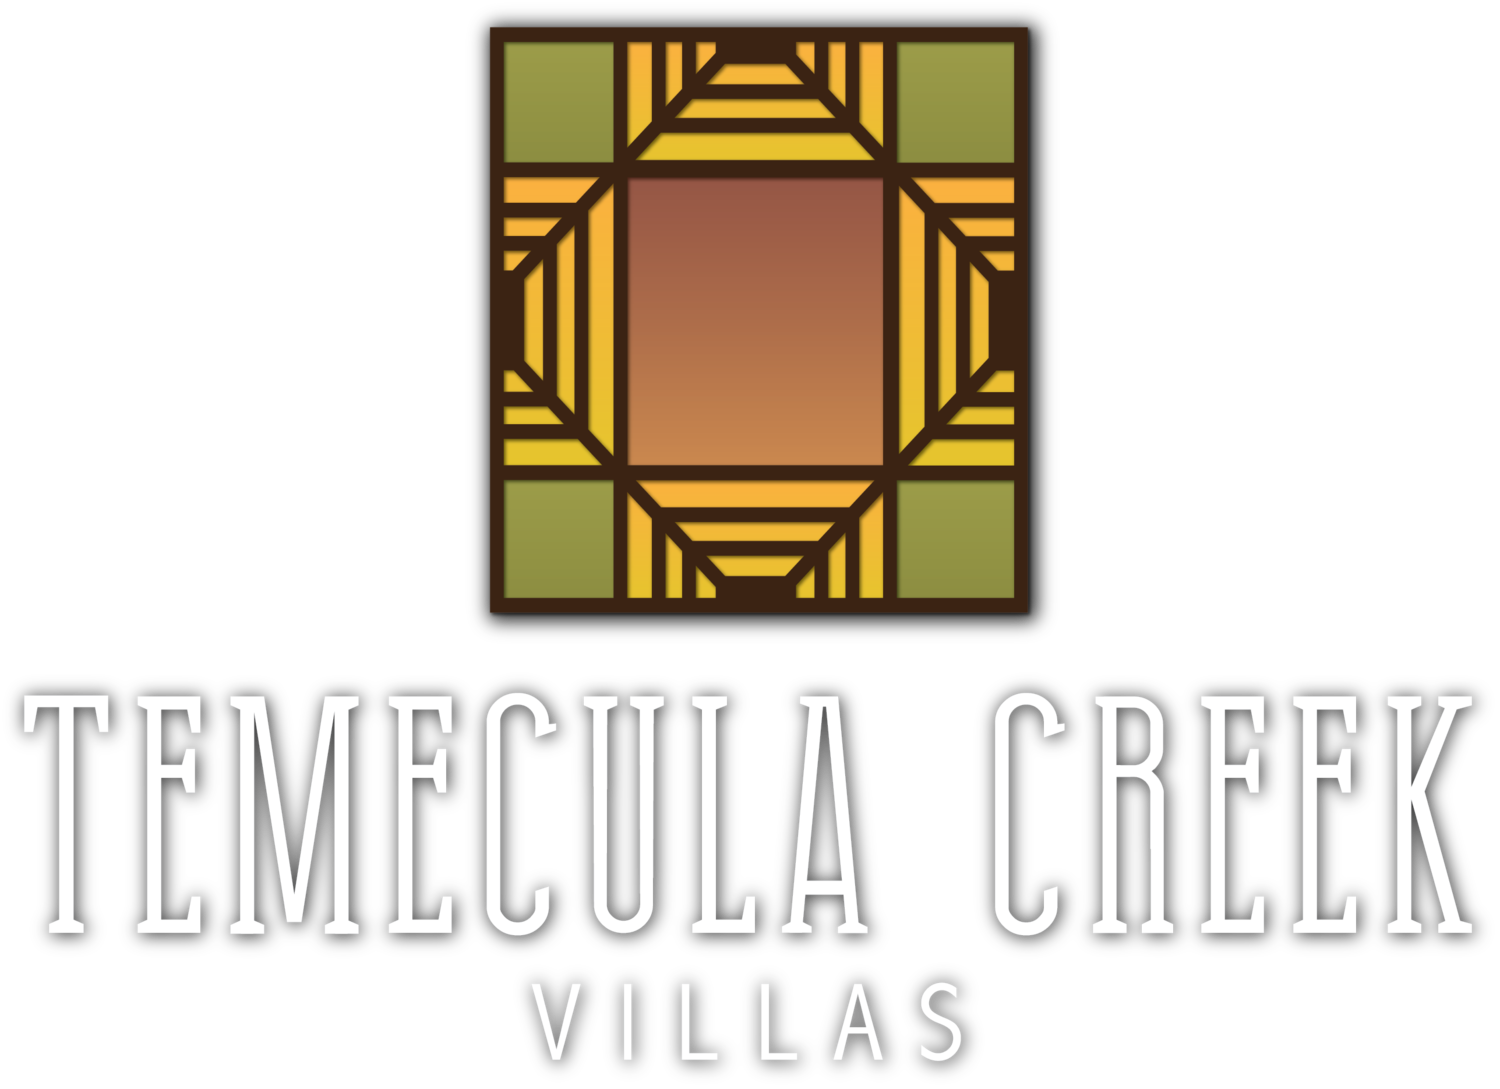 Temecula Creek Villas